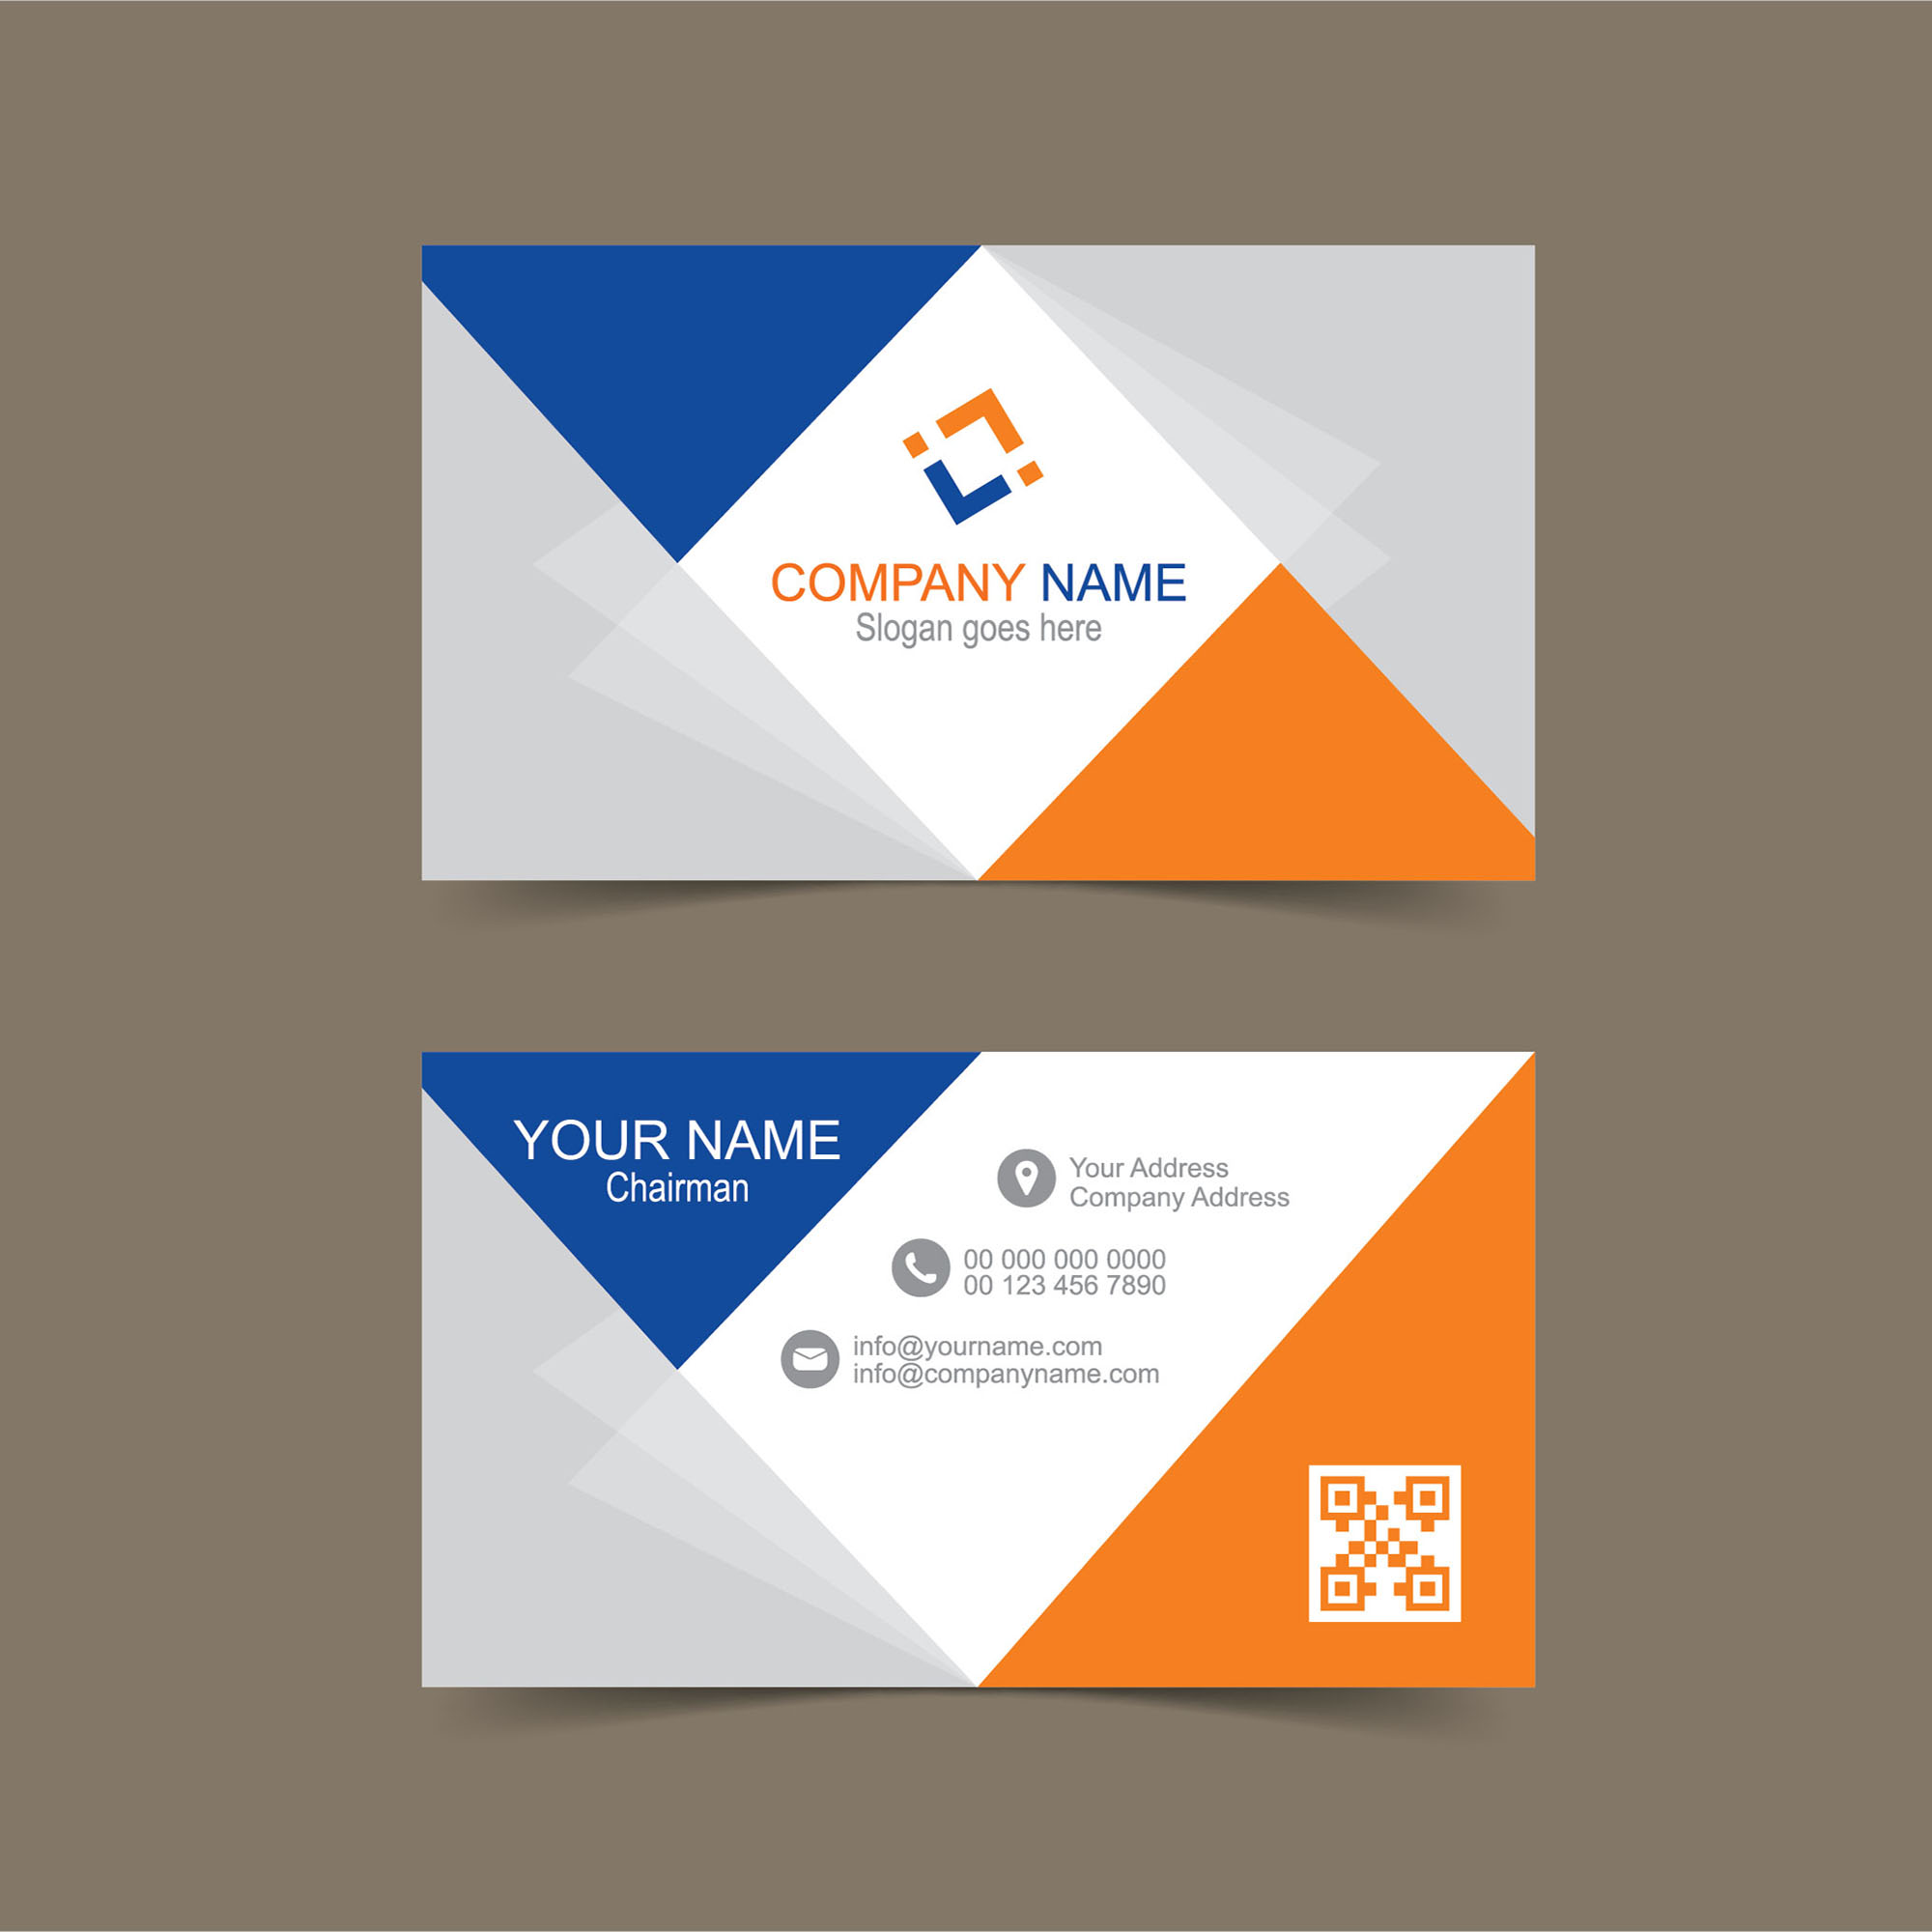 Free business card template for illustrator wisxi business card business cards business card design business card template design templates accmission Choice Image